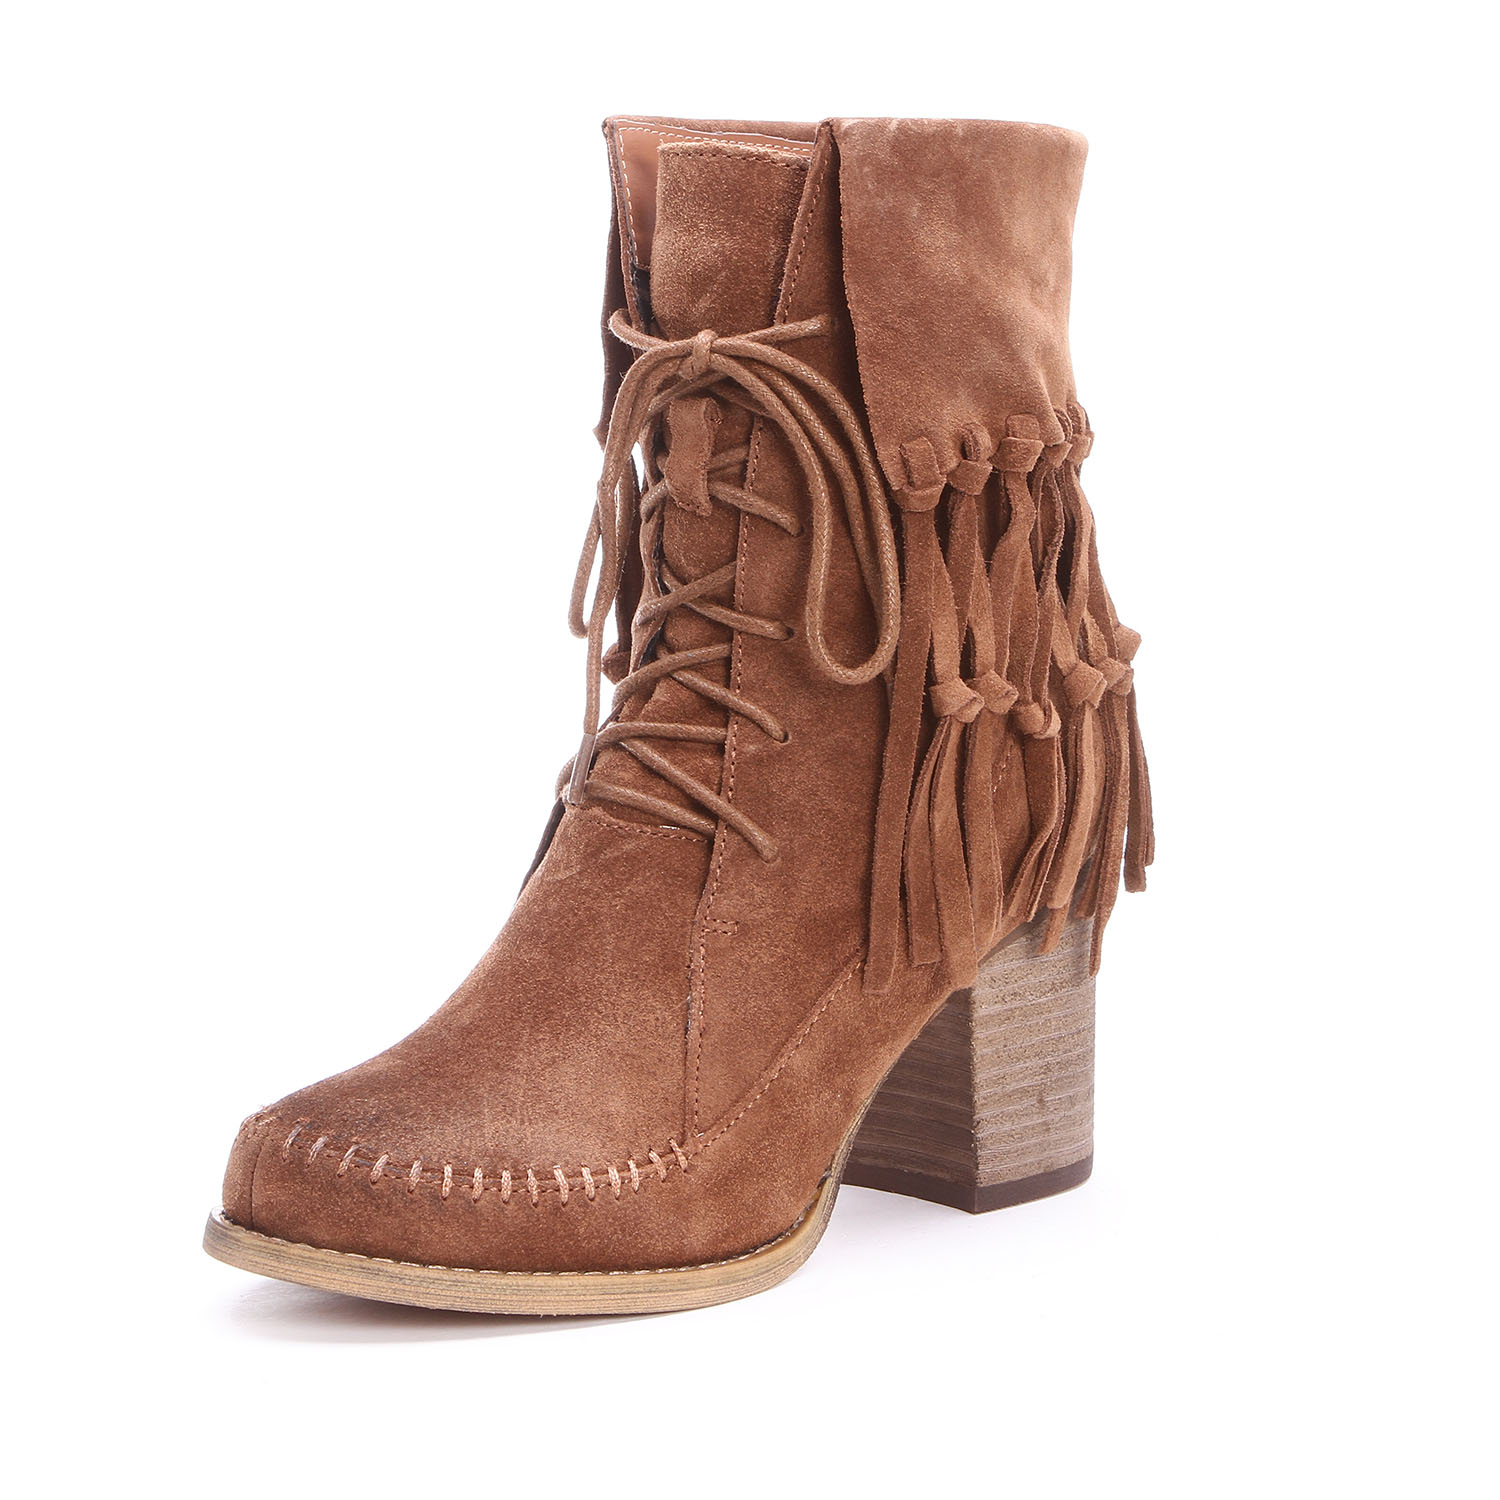 Sbicca Womens Wagon Lace-Up Fringe Ankle Cowgirl Boots Tan